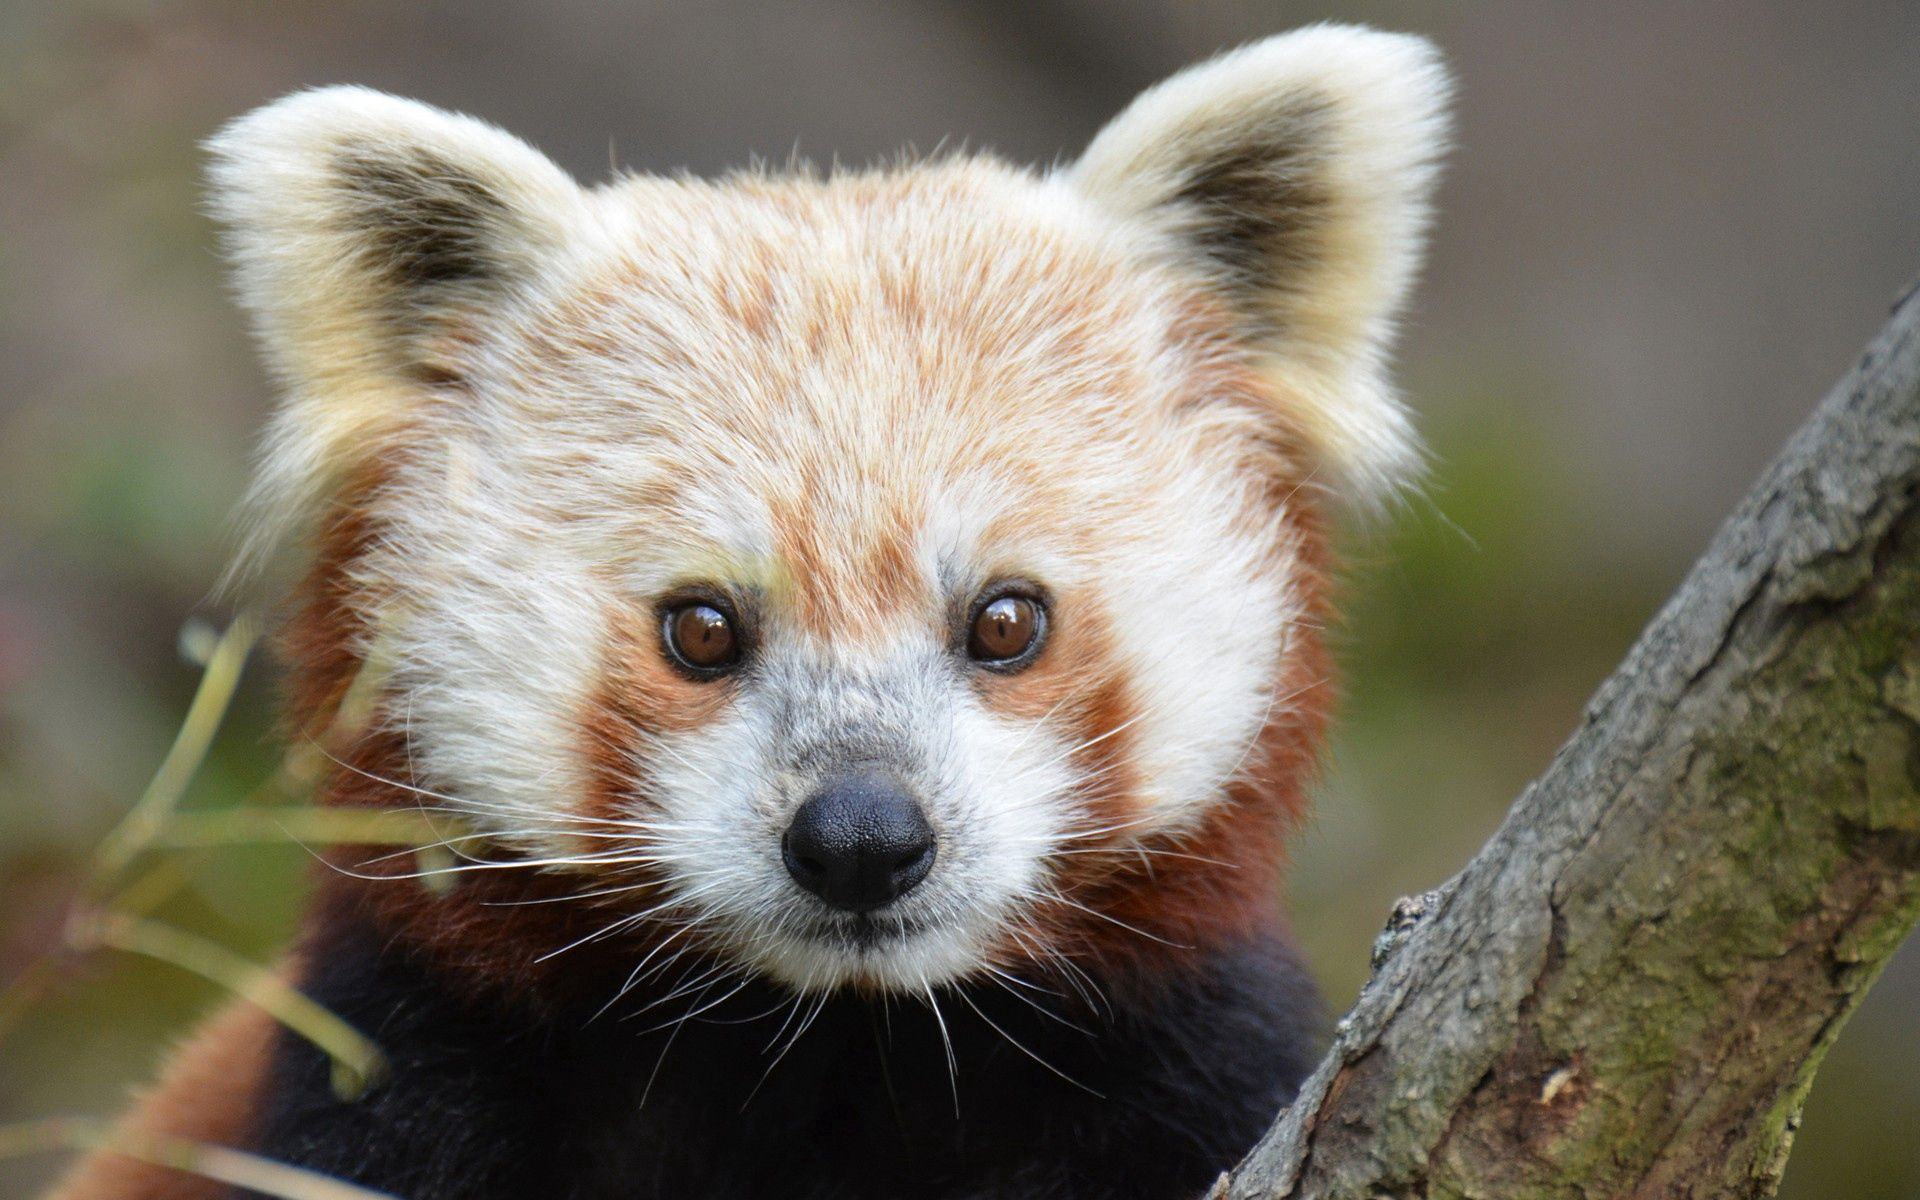 131600 Screensavers and Wallpapers Nose for phone. Download Animals, Sight, Opinion, Nose, Red Panda pictures for free